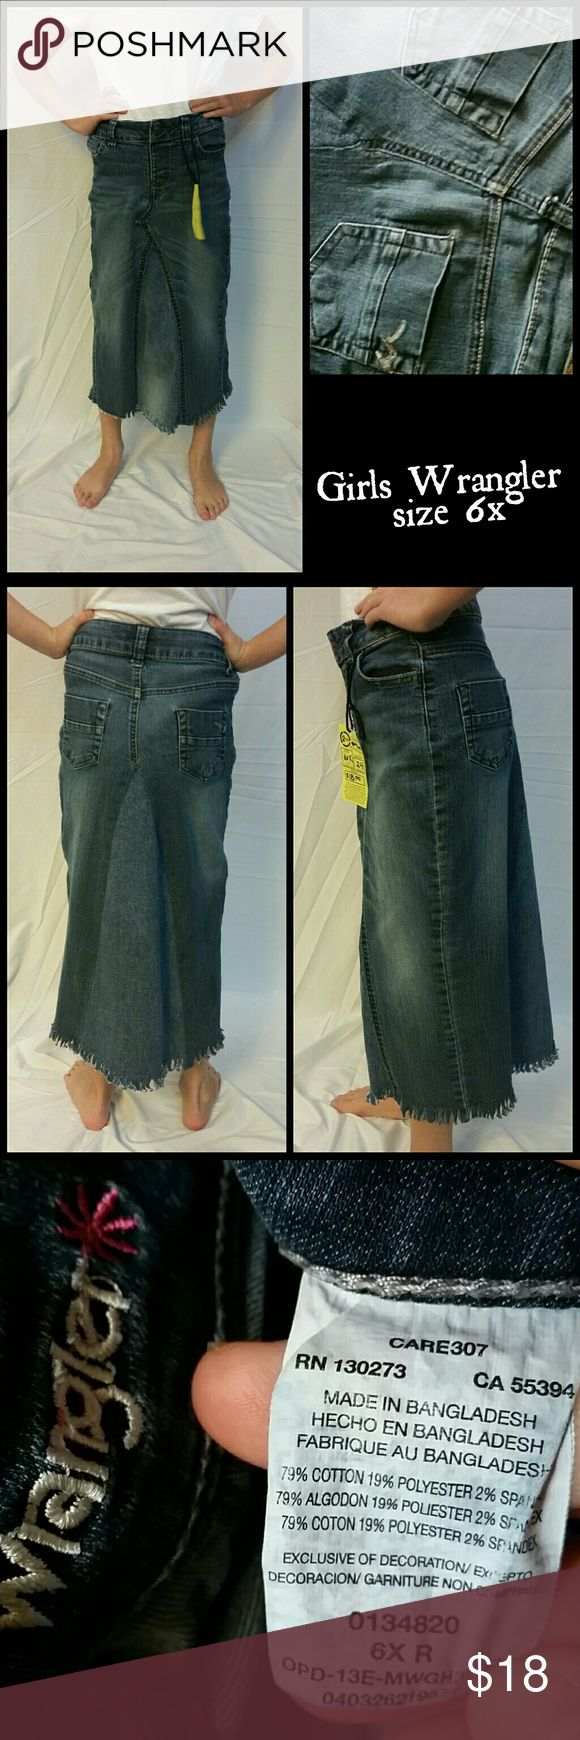 """Girls Wrangler long jean skirt. Size 6x. Modest. Great skirt! Frayed hem won't roll so it's wash and go and perfect for school mornings! Size 6x. Measurements taken when lying flat: waist 11 1/2"""" hips 13"""" length 24"""". Note picture 4: waist has been taken in slightly and can be let out. Wrangler Bottoms Skirts"""